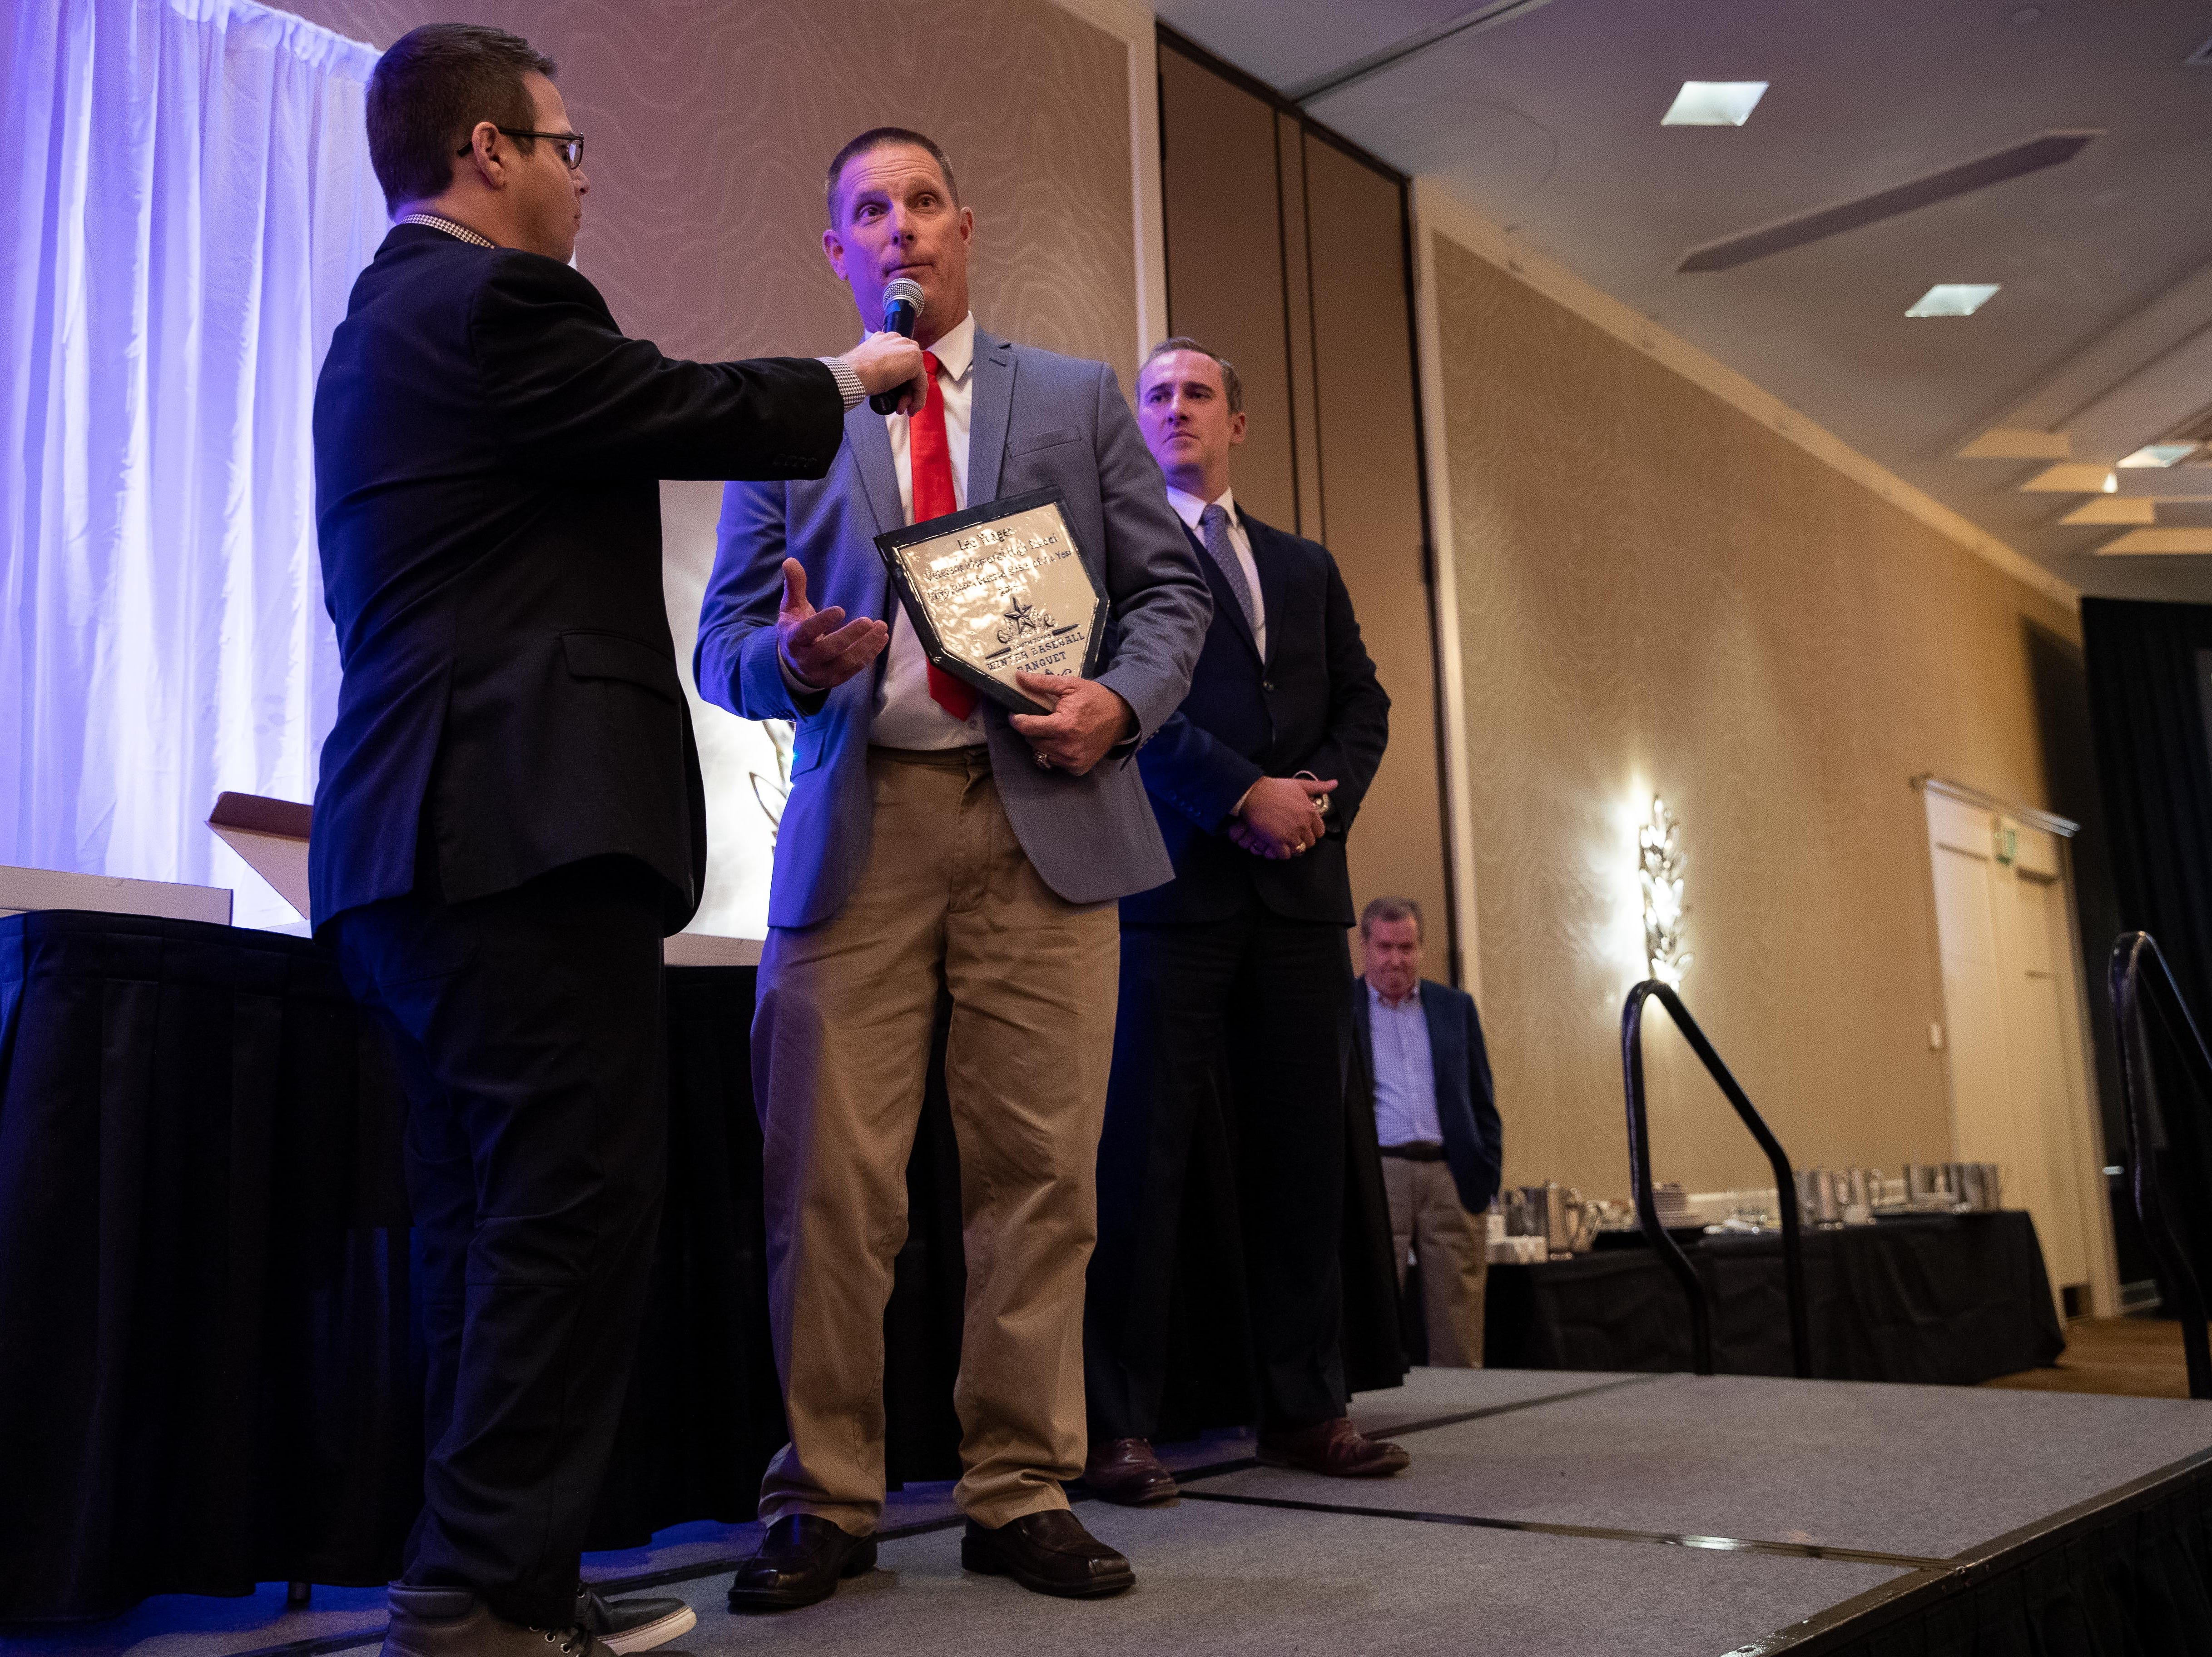 Veterans Memorial's Lee Yeager receives the big school baseball coach of the year award during the Hooks South Texas Baseball Banquet at the Omni Hotel on Thursday, Jan. 24, 2019.